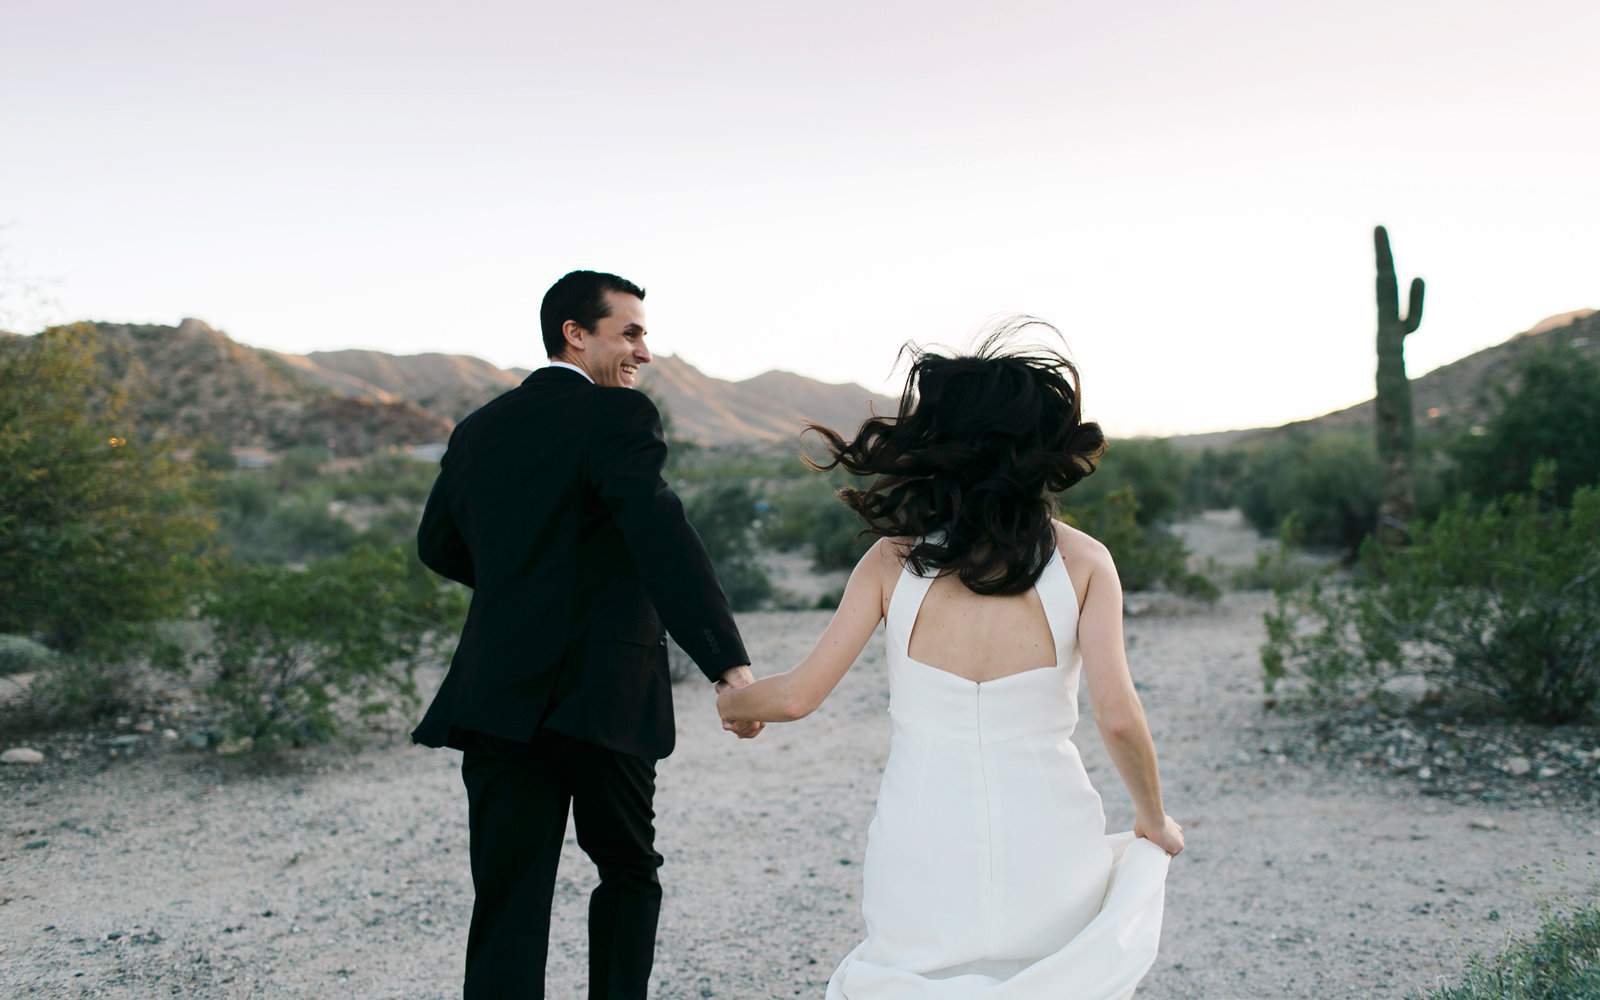 Bride and groom in desert landscape